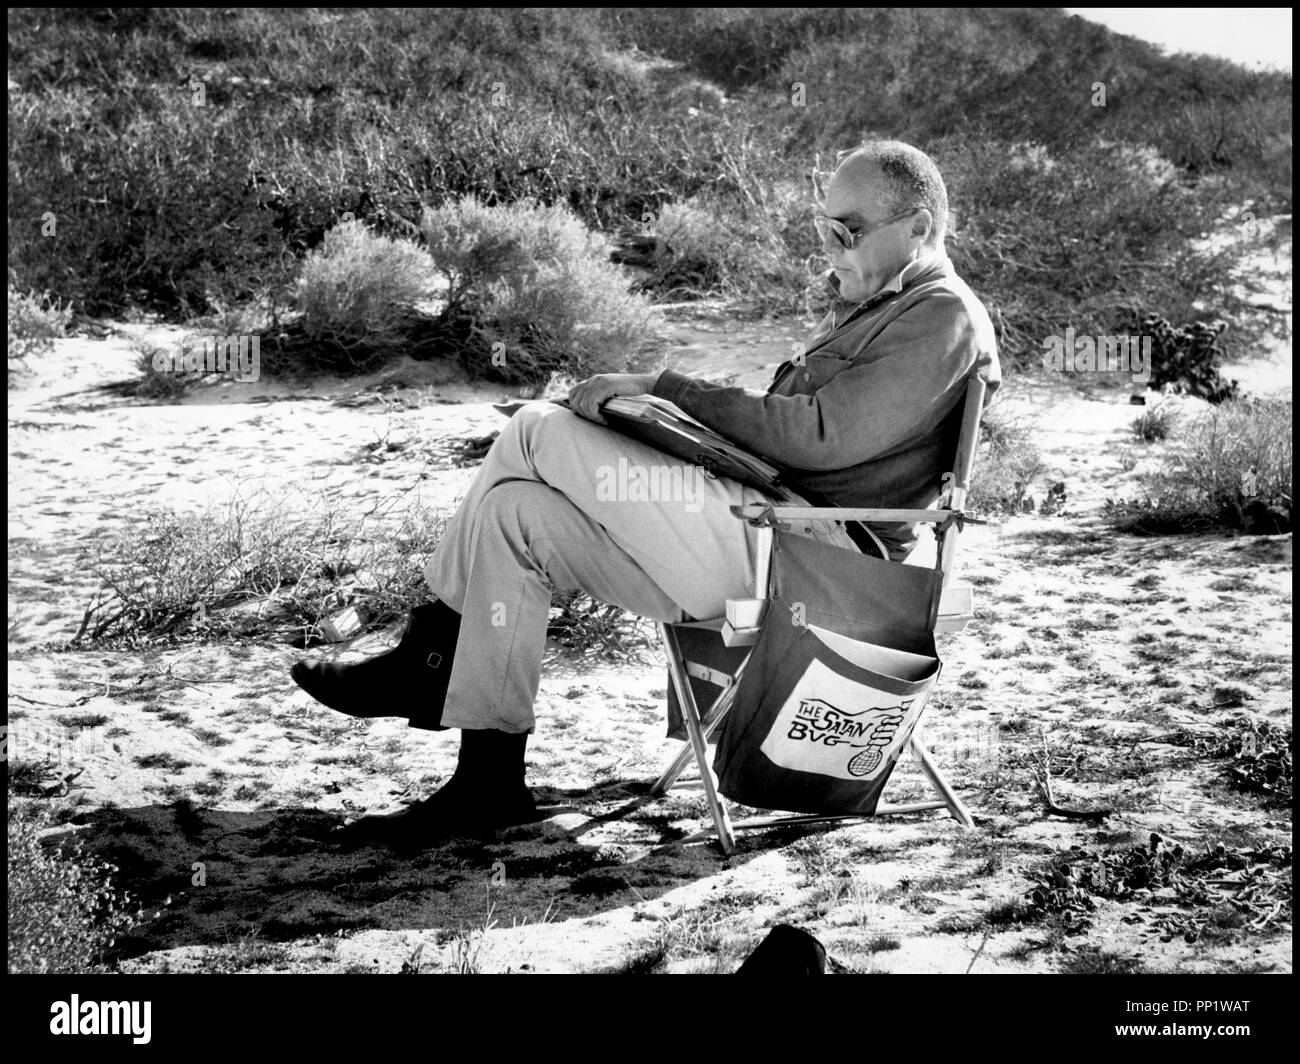 Prod DB © The Mirisch Corporation / DR STATION 3: ULTRA SECRET (THE SATAN BUG) de John Sturges 1965 USA avec John Sturges sur le tournage chaise realisateur, scenario, script, lire d'apres le roman de Alistair MacLean (alias Ian Stuart) scenario de James Clavell et Edward Anhalt Stock Photo